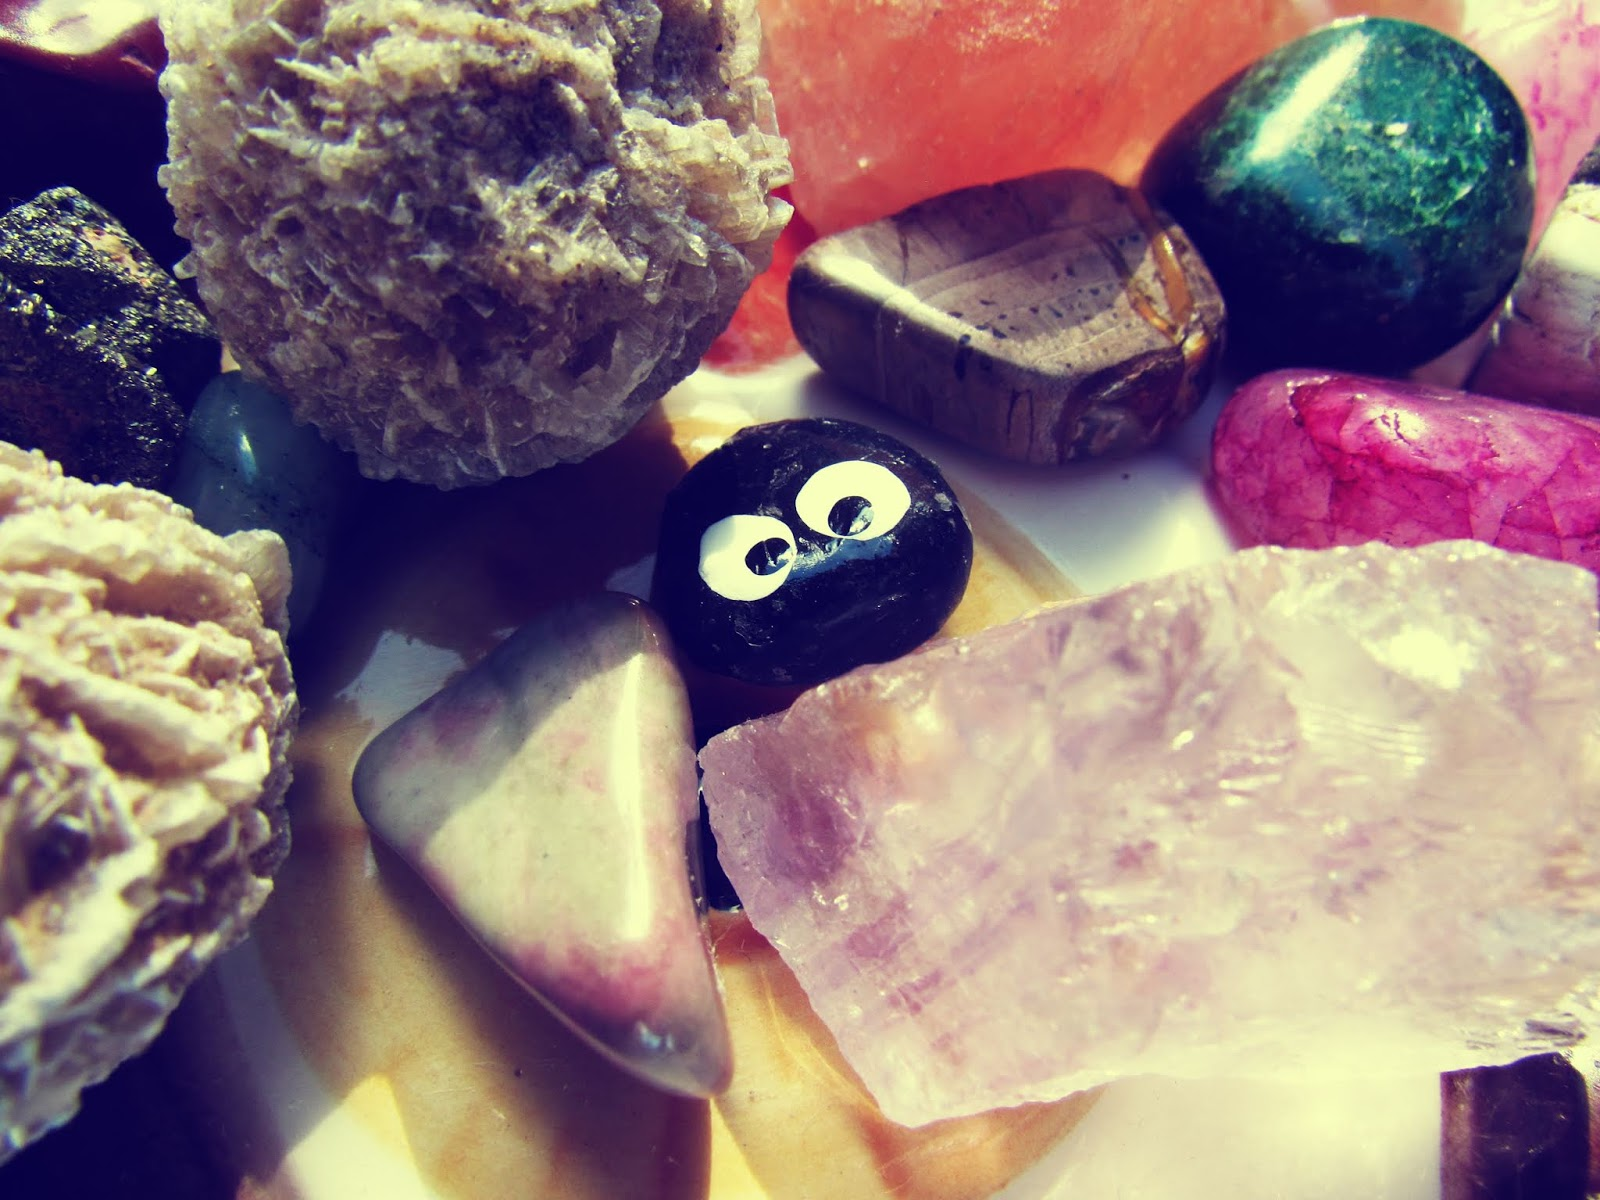 Healing stone assortment with fools gold, desert rose crystal, and a tiny black rock with a painted face